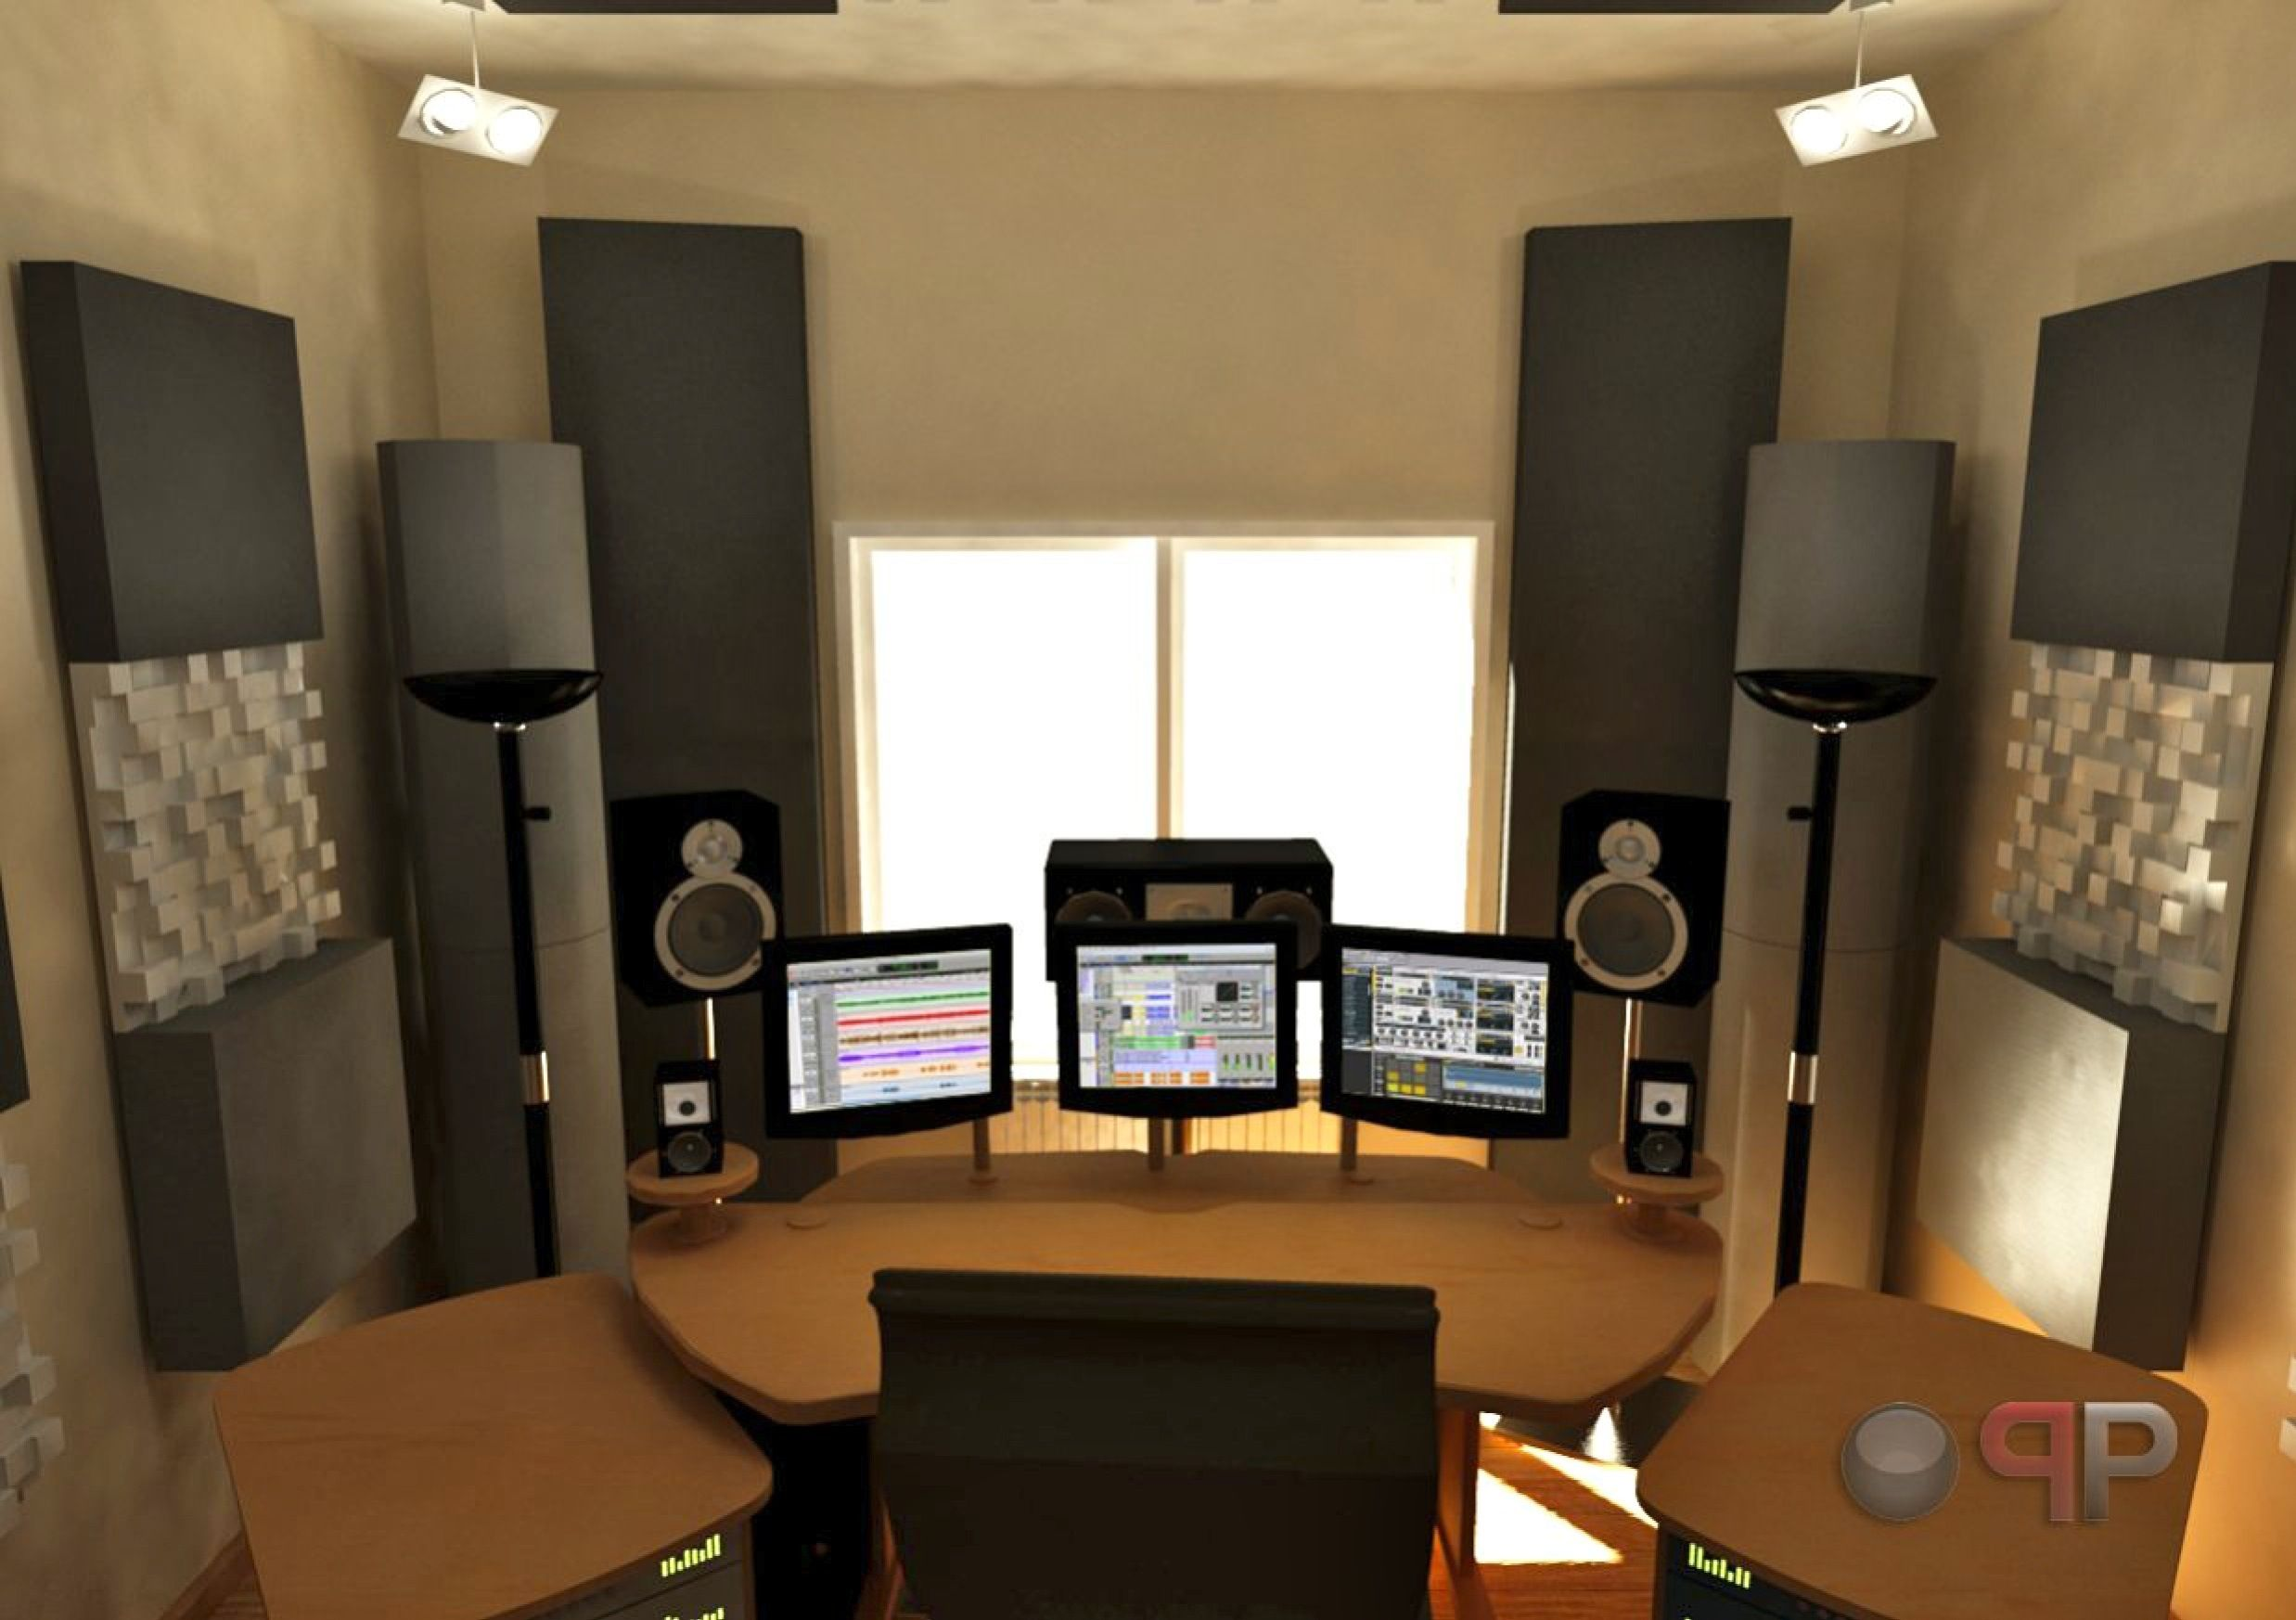 acoustic design mastering studio jocavi acoustic panels diy audiophile pinterest. Black Bedroom Furniture Sets. Home Design Ideas